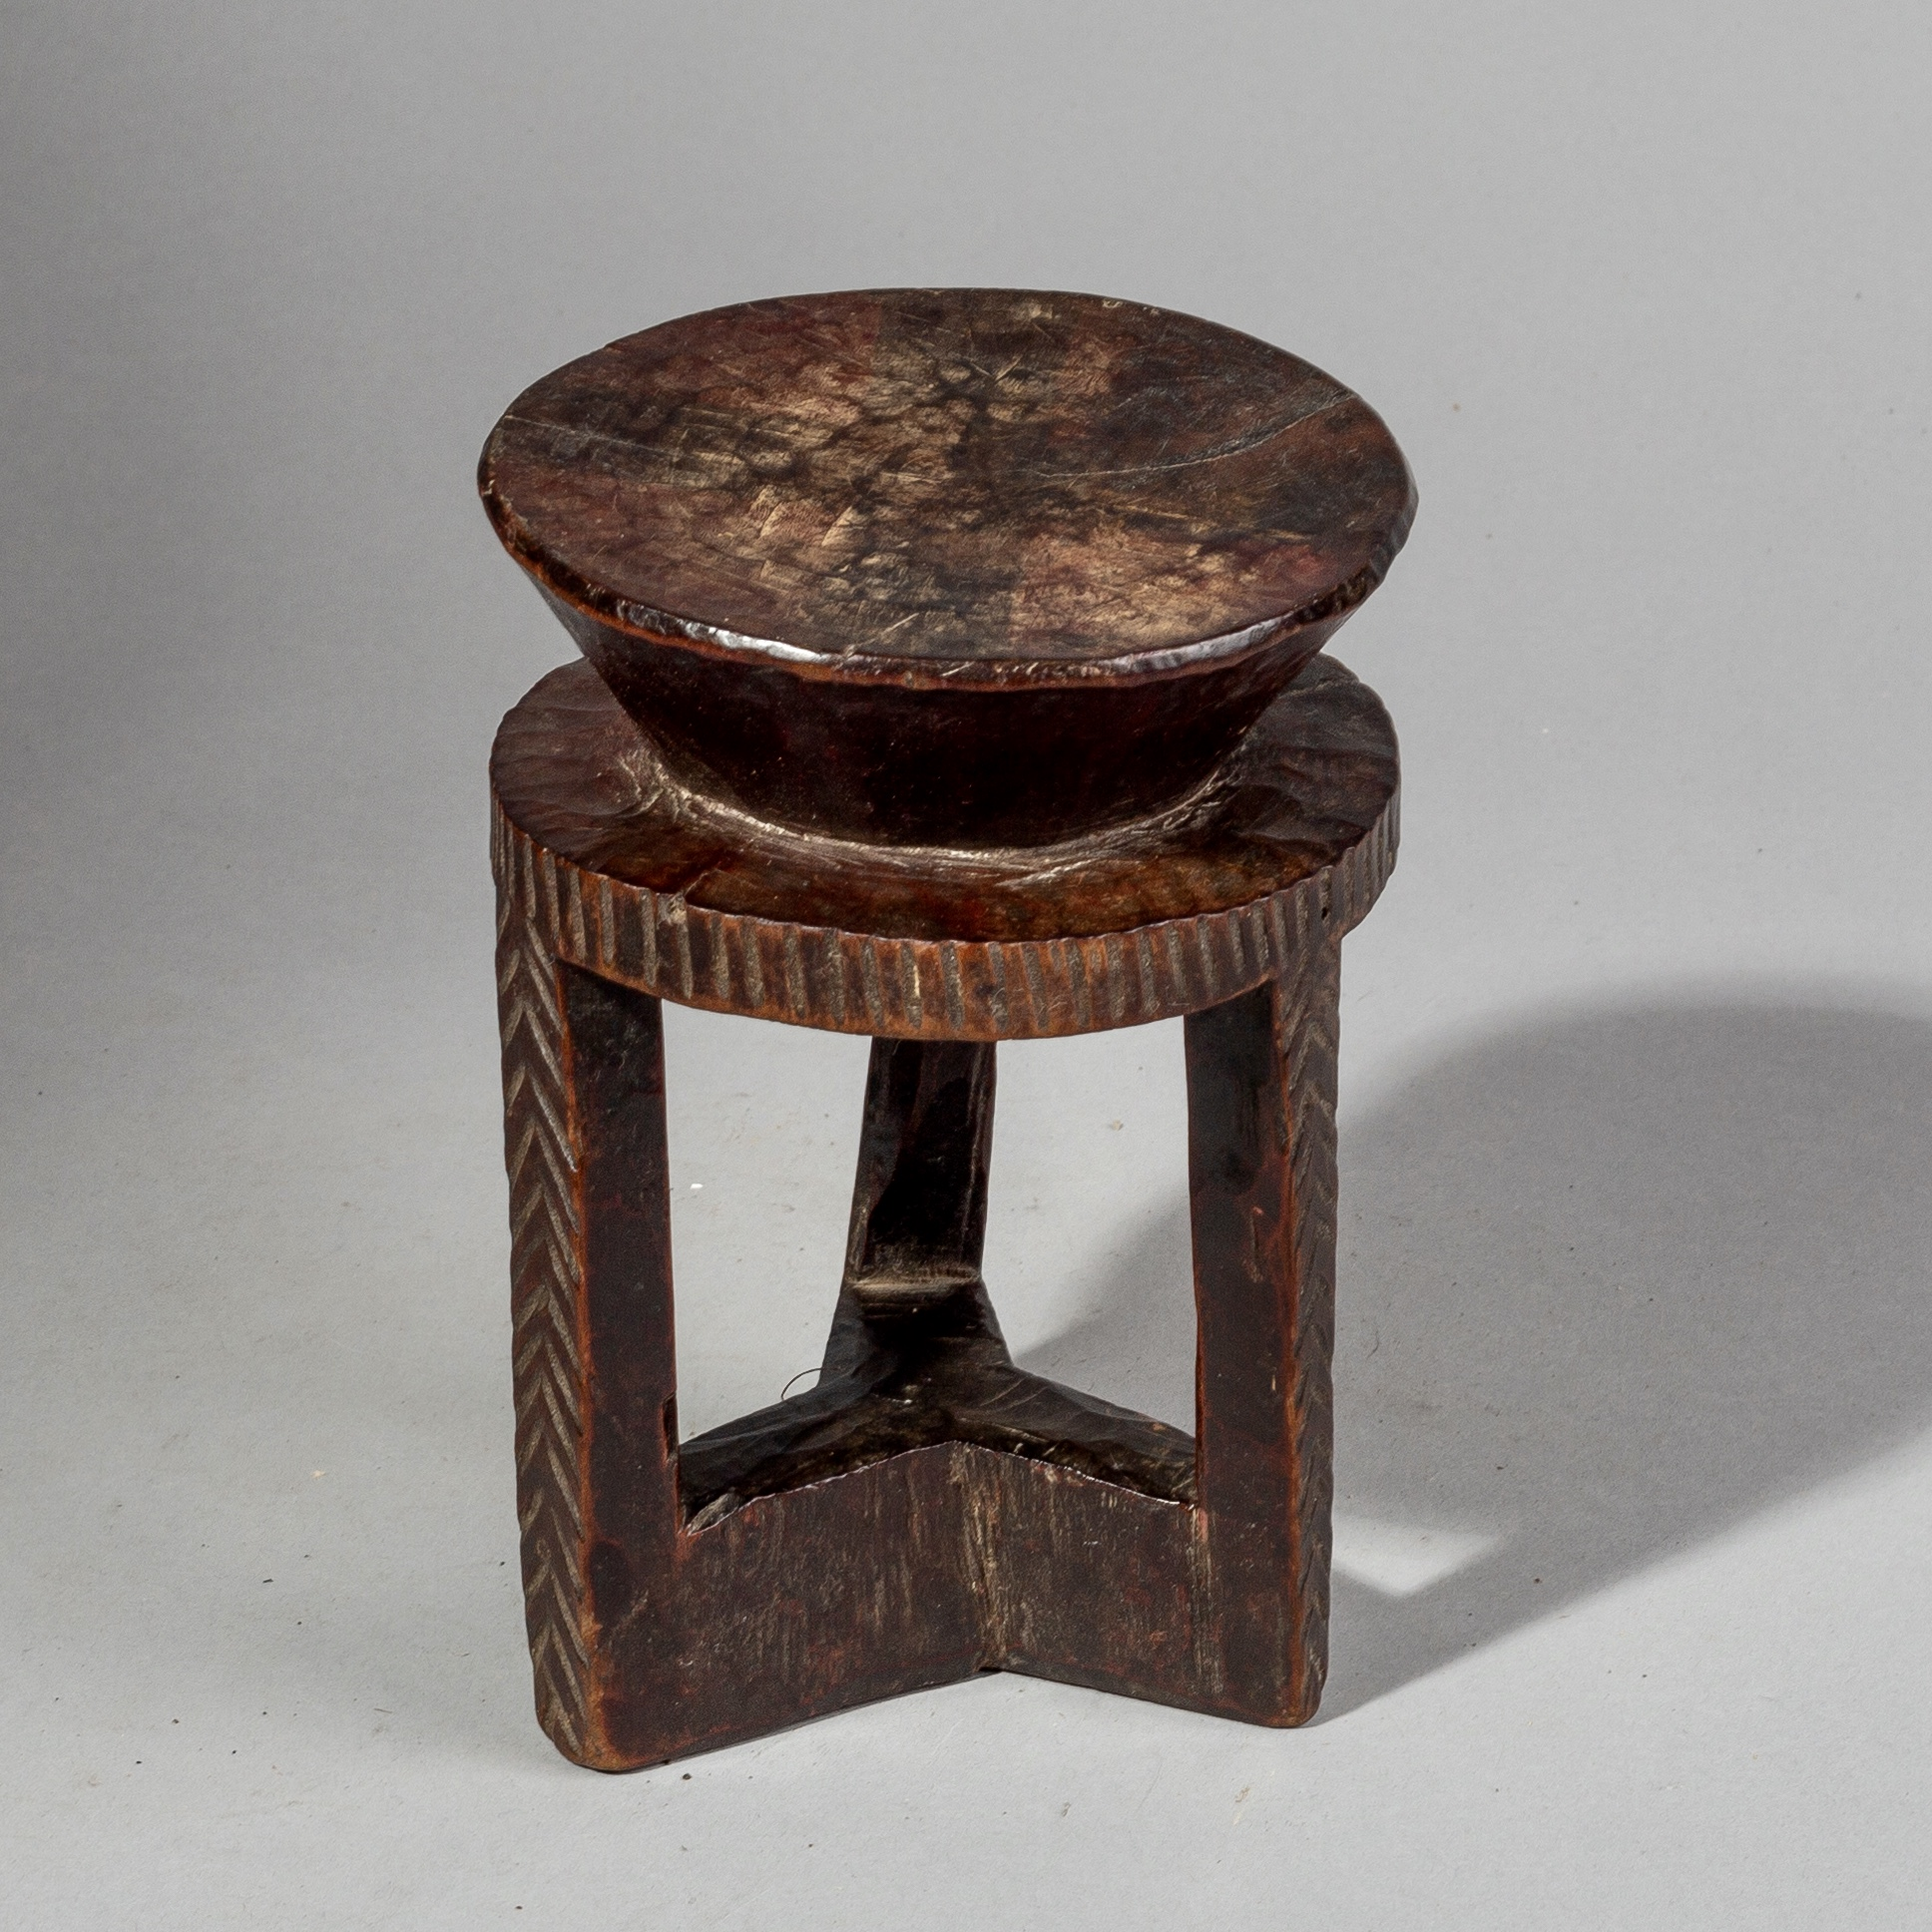 AN ELEGANTLY PATINATED COFFEE STAND FROM ETHIOPIA( No 1577 )